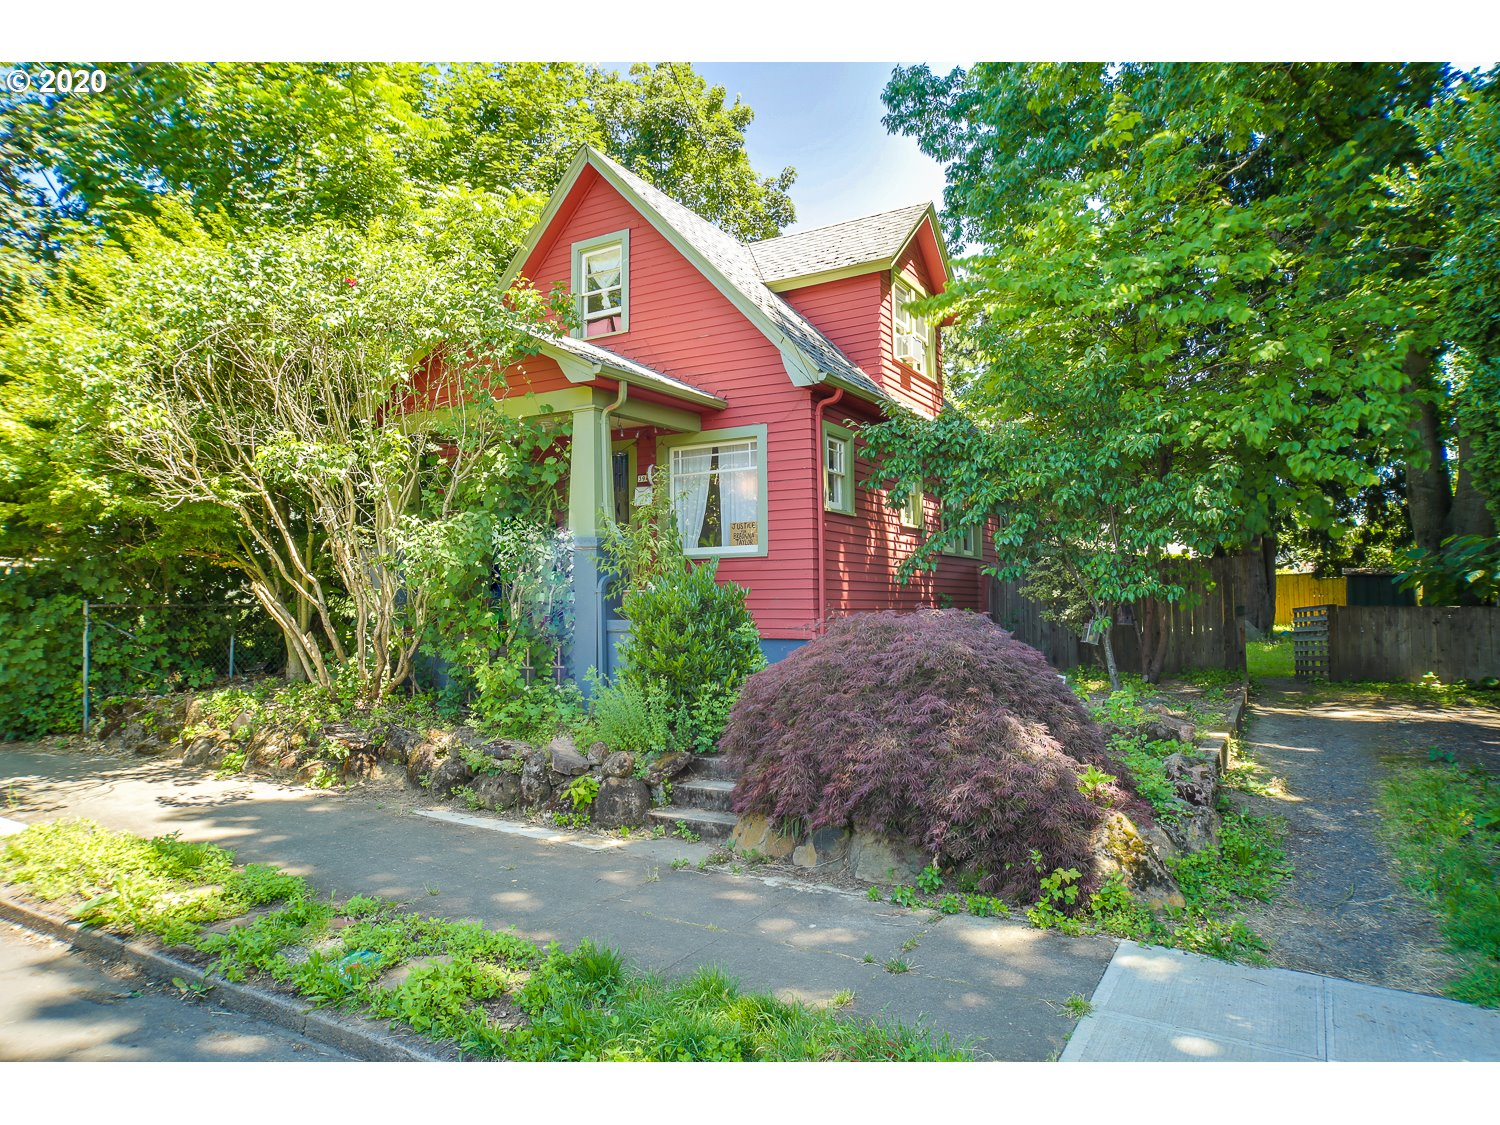 Charming Irvington area home! Classic 1900 architecture. Interior of home features hardwood floors, original built-ins, beamed ceilings. Finished attic includes 2 bedrooms. Unfished basement includes laundry room. Large backyard.